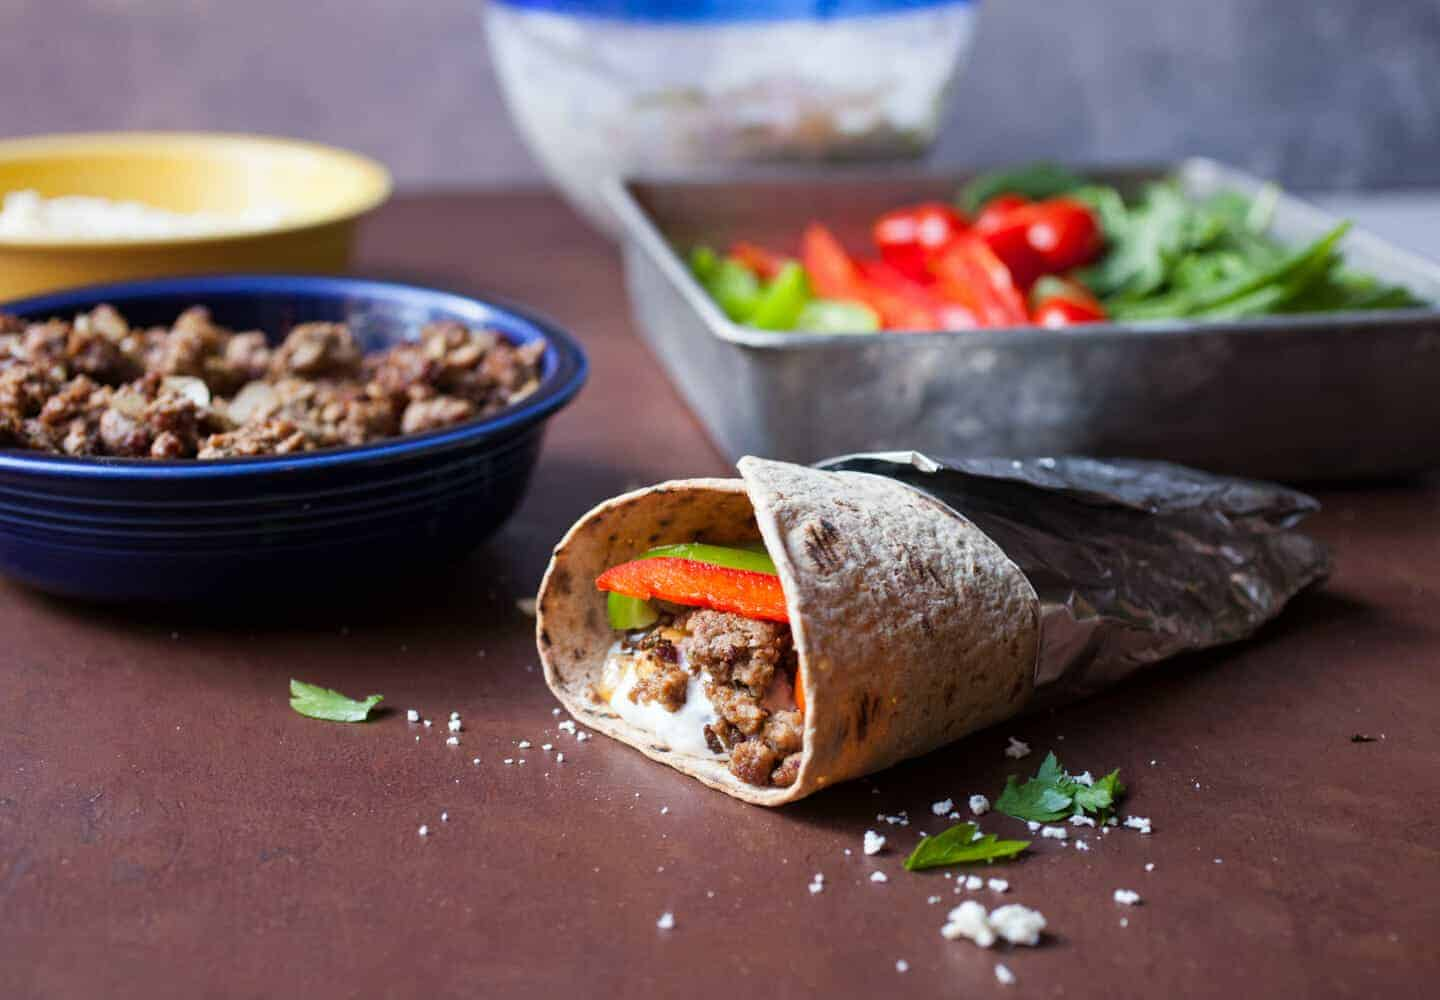 Lamb Gyro Flatbread Wraps: Savory ground lamb served with a labneh tzatziki sauce and fresh veggies in a Flatbread wrap. One of my new favorite wraps, for sure! | Macheesmo.com